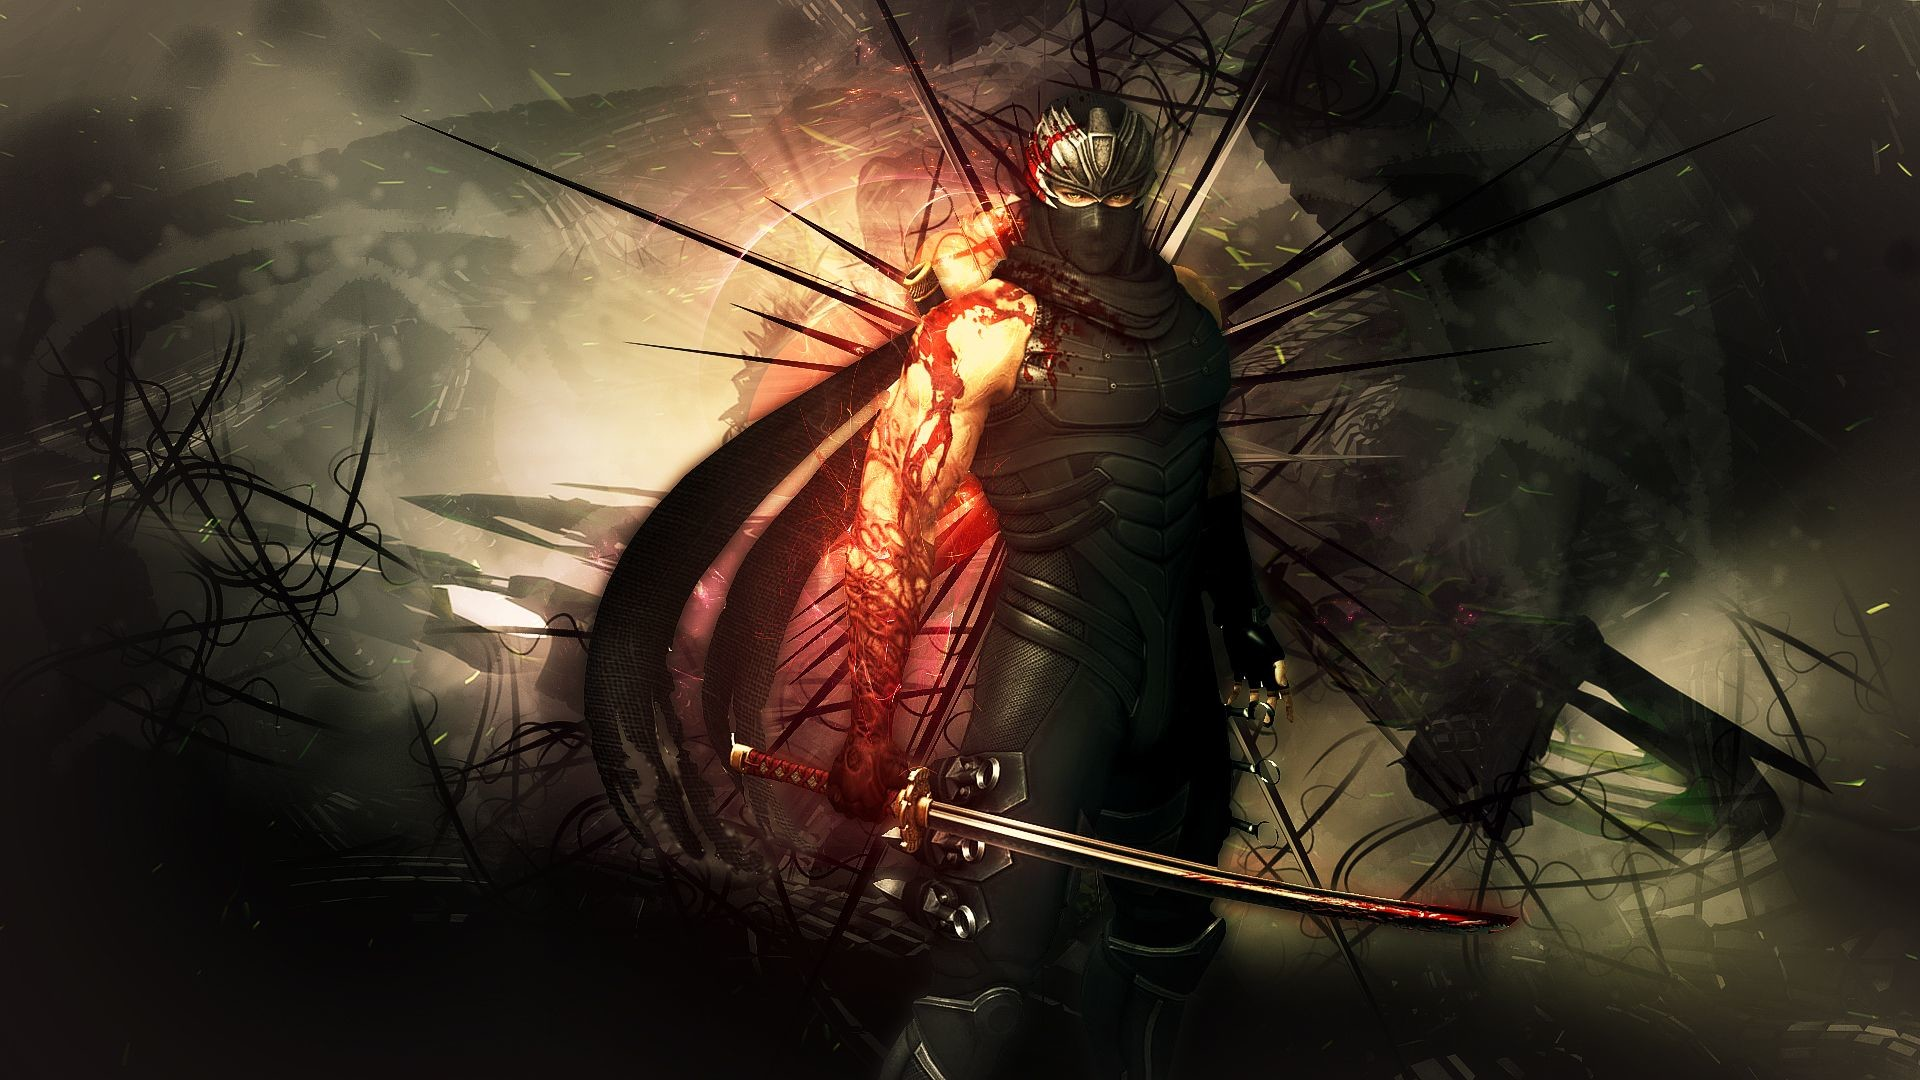 1920x1080 NINJA GAIDEN fantasy anime warrior weapon sword blood f wallpaper .